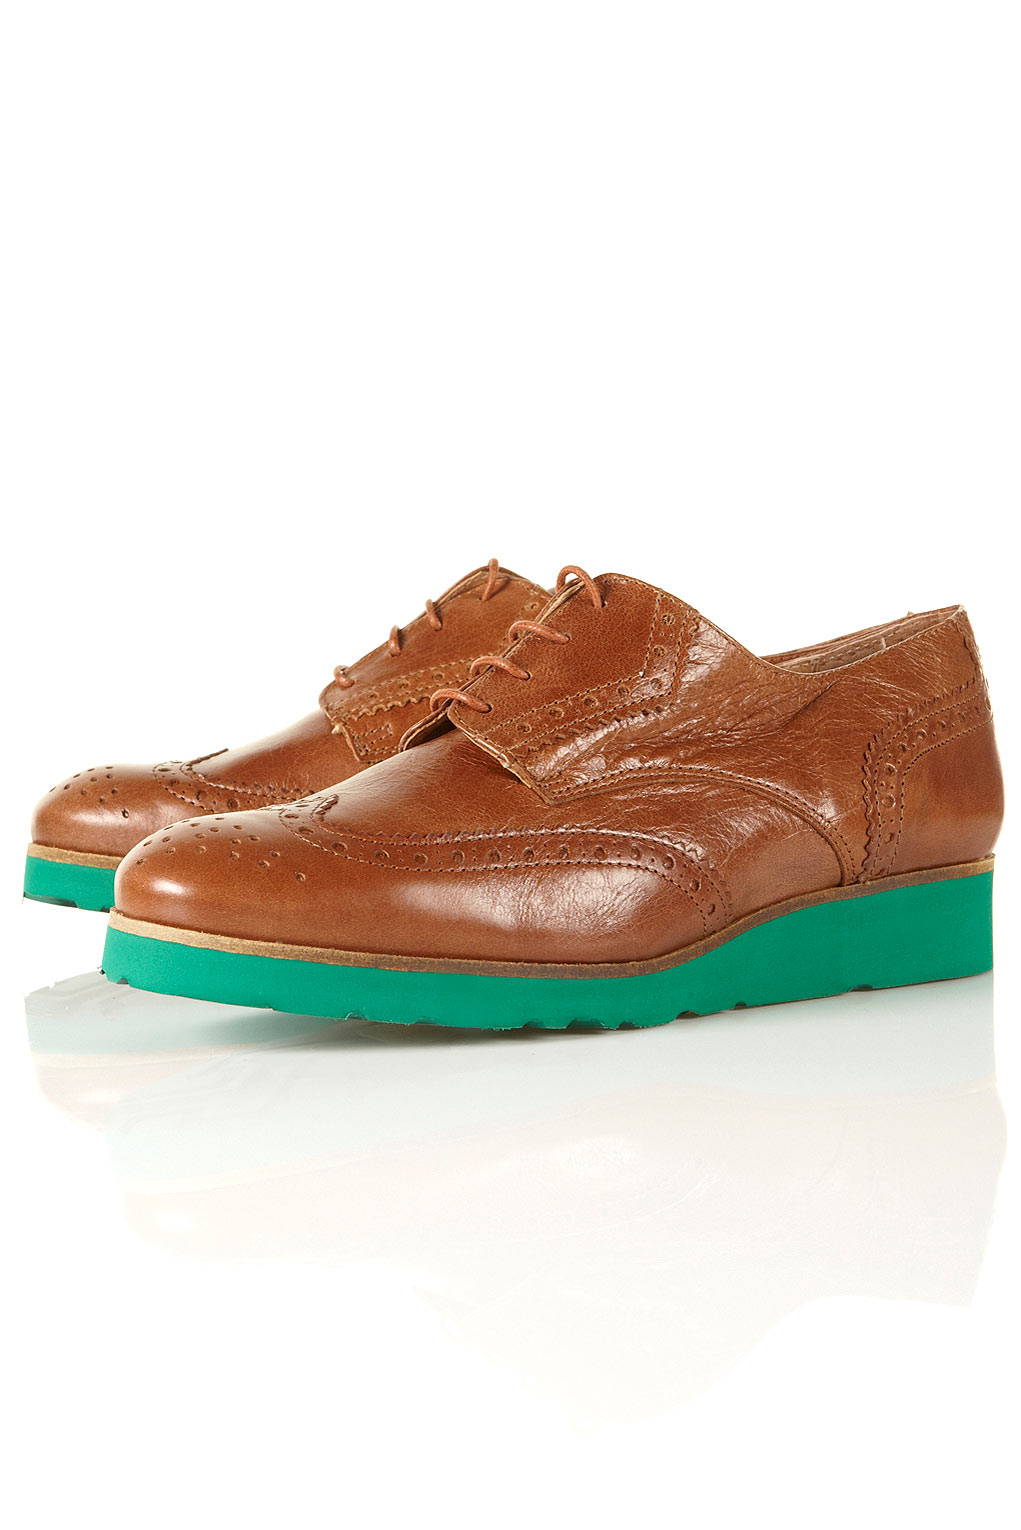 Topshop Kingston Tan Leather Brogues